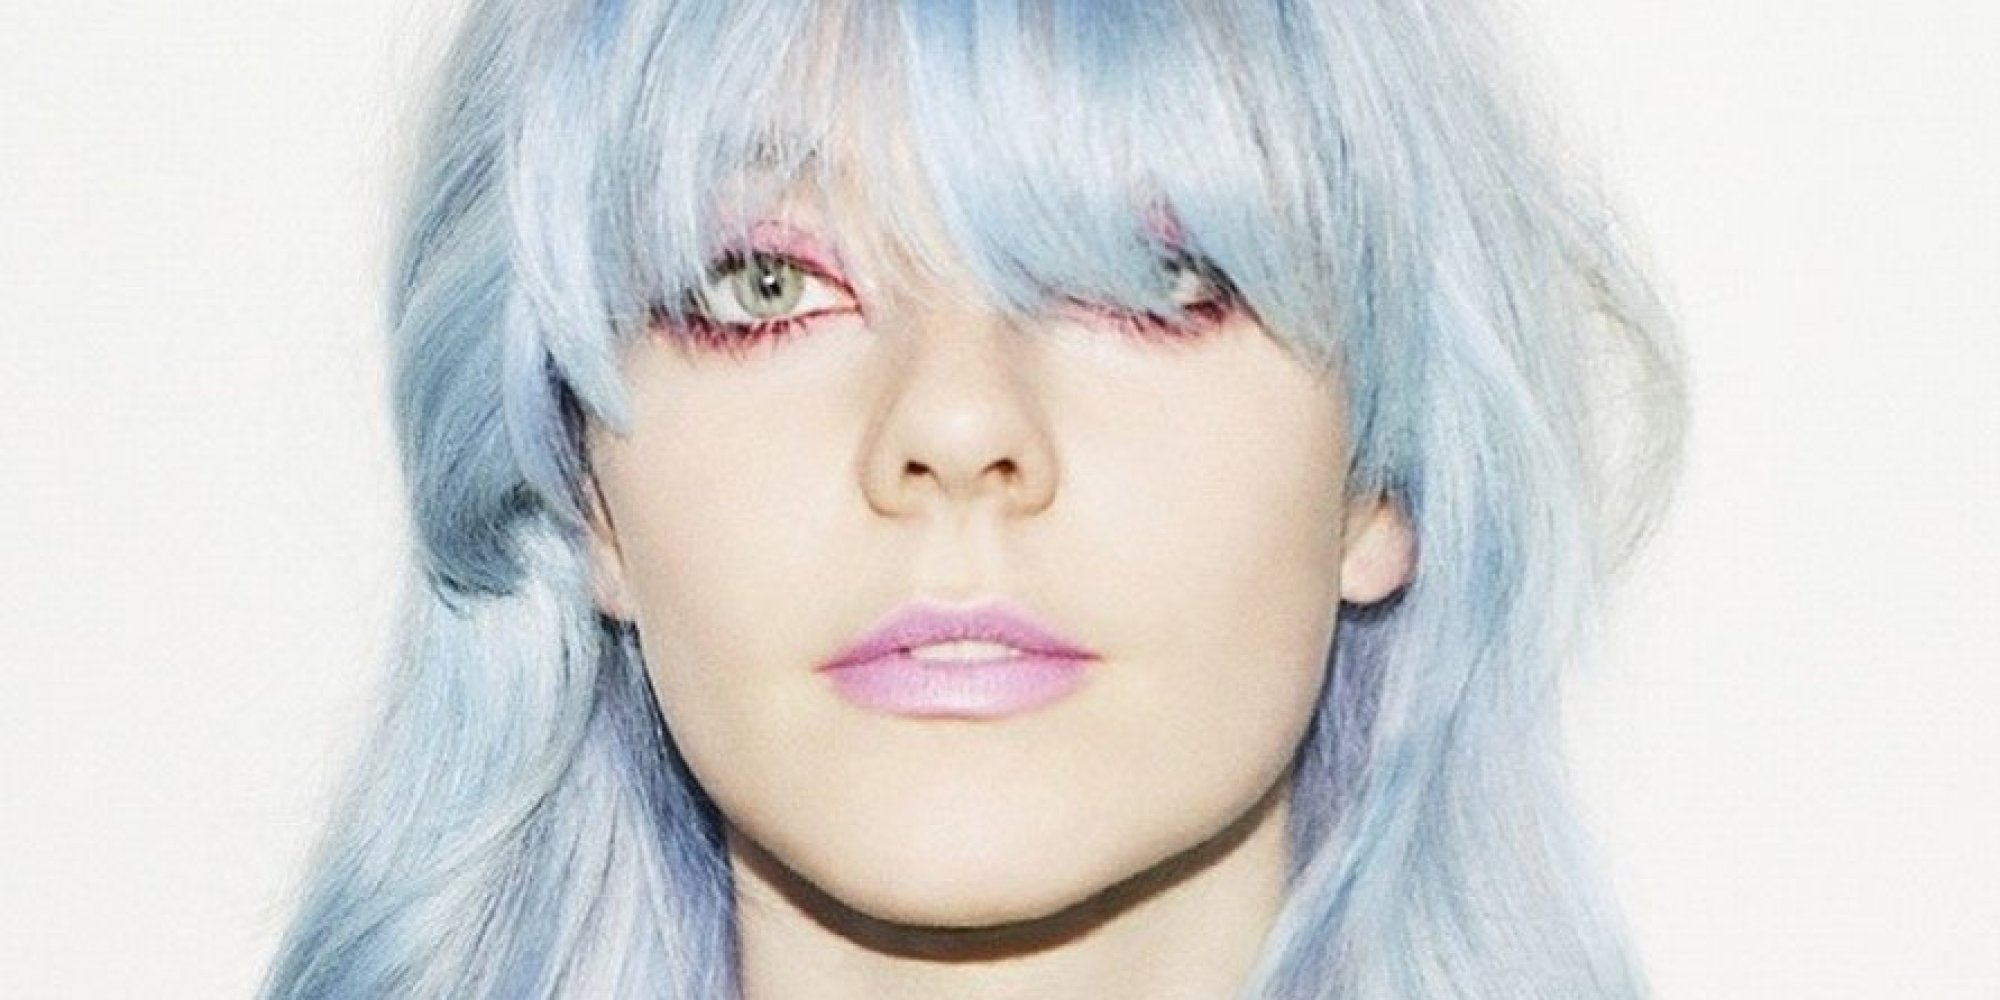 Ice Blue Hair Dye Is The Coolest Trend For Winter